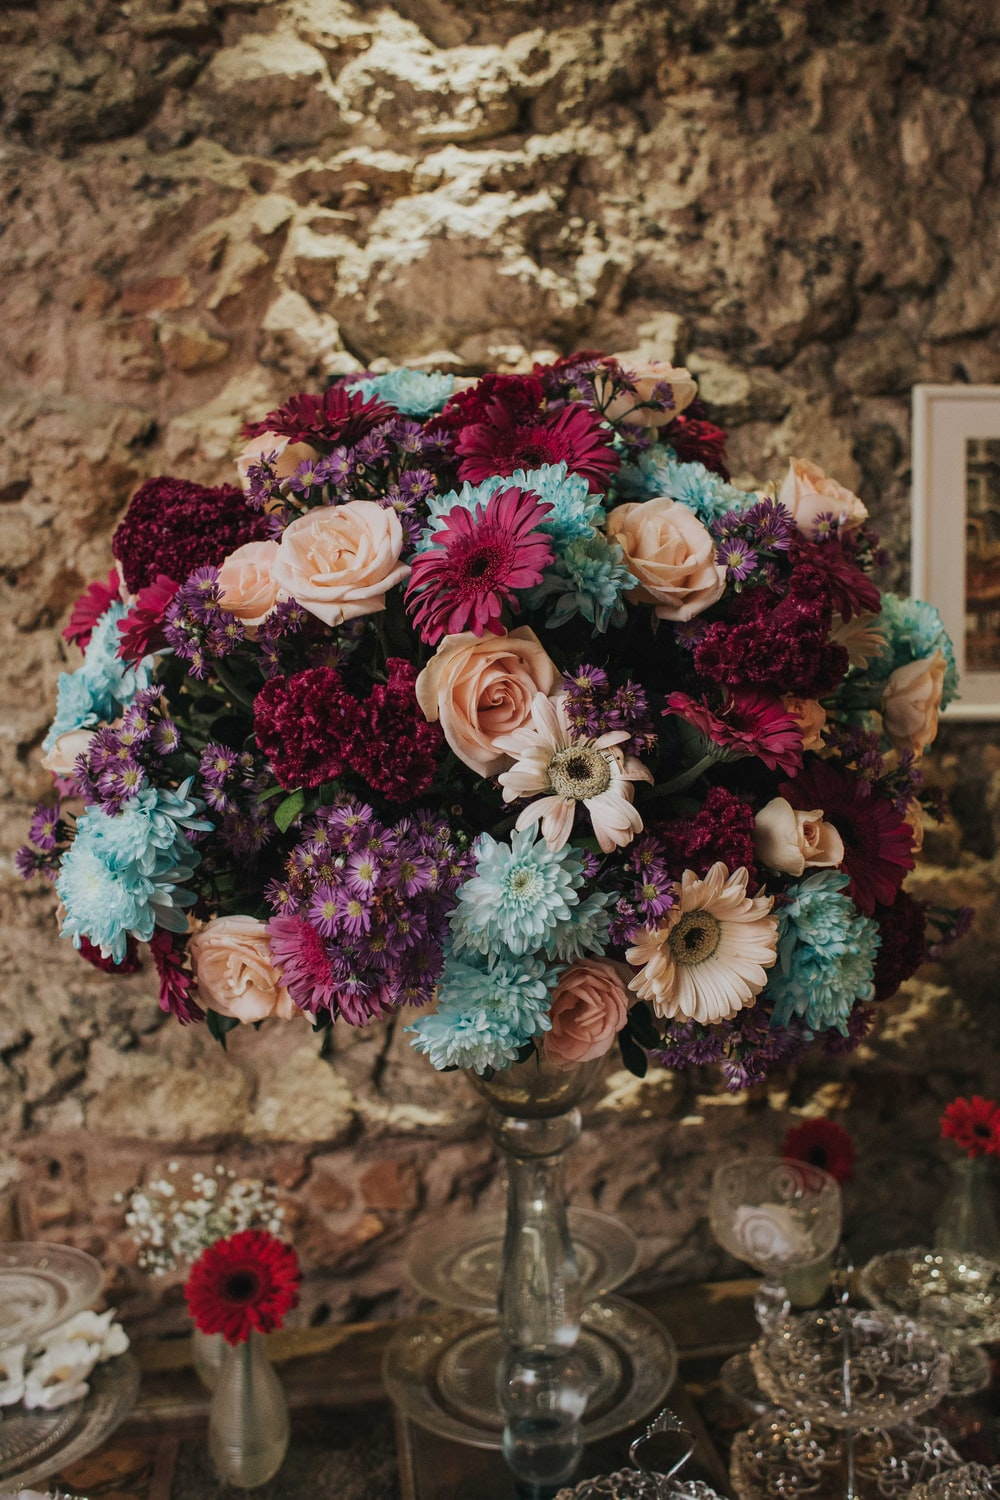 100 wedding flower pictures download free images on unsplash multicolored bouquet flowers izmirmasajfo